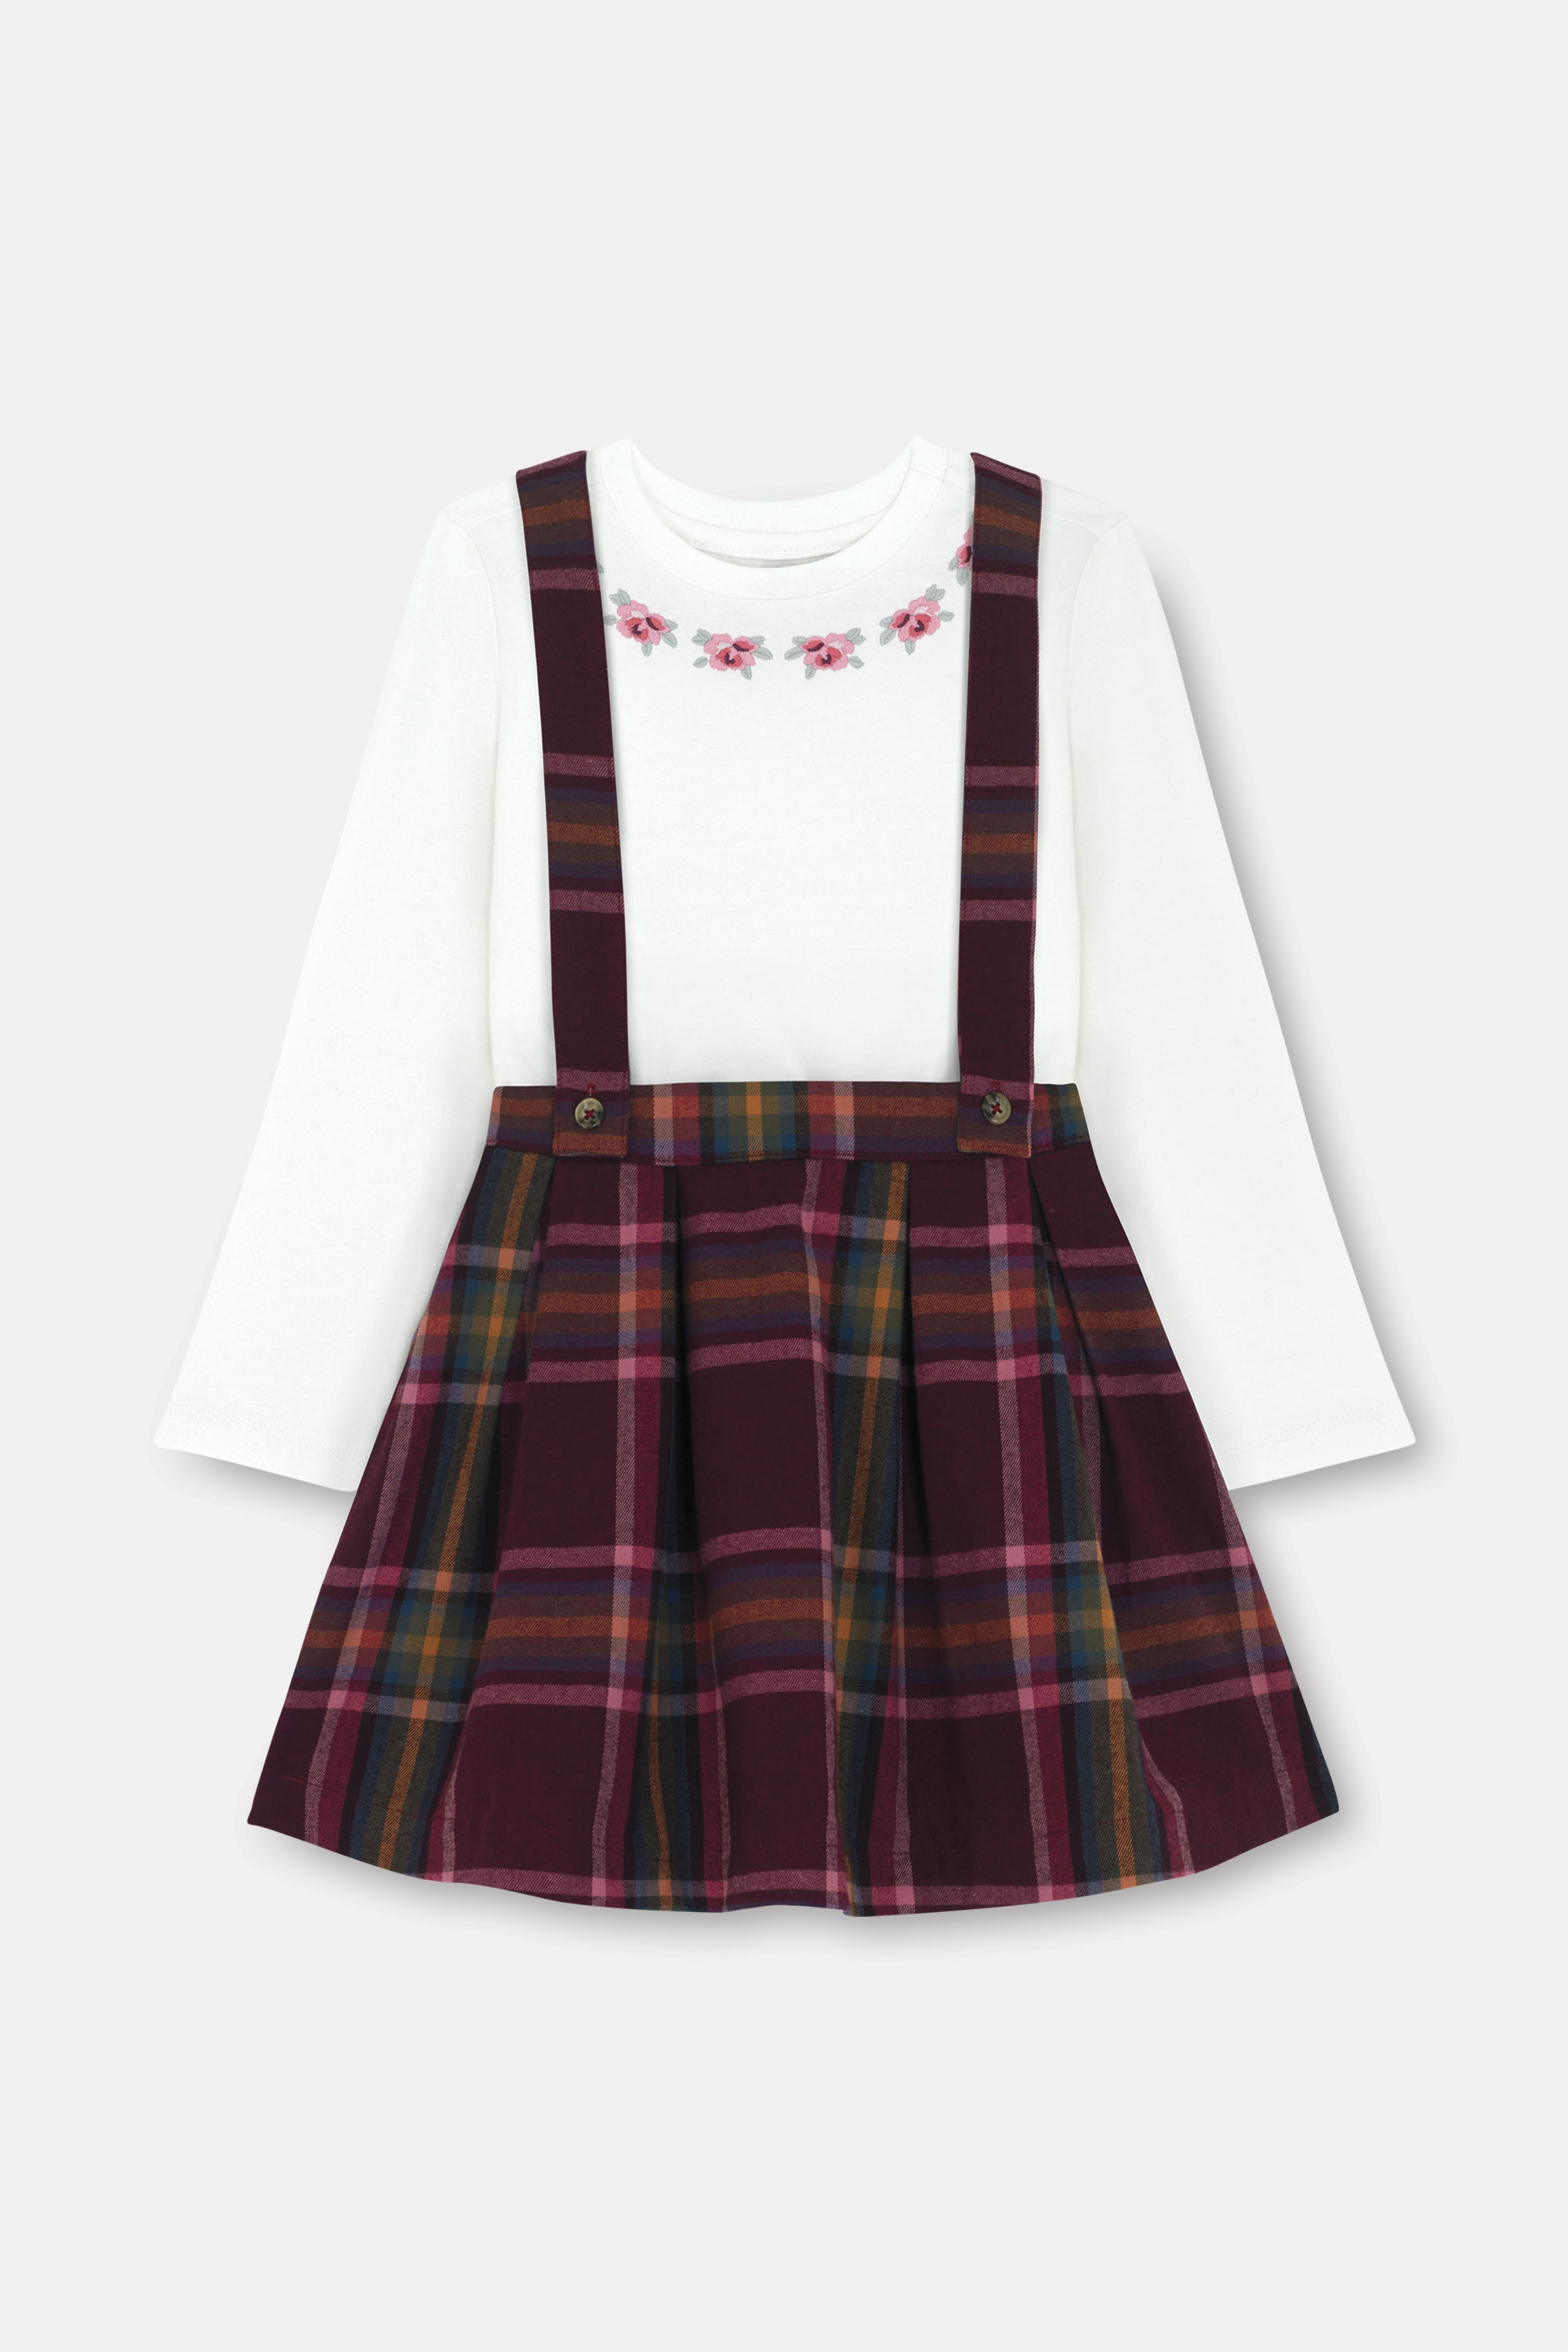 Cath Kidston Kids Pinafore and T-Shirt Set in Dark Plum, Clarendon Check, Cotton/Polyester Blend, 5-